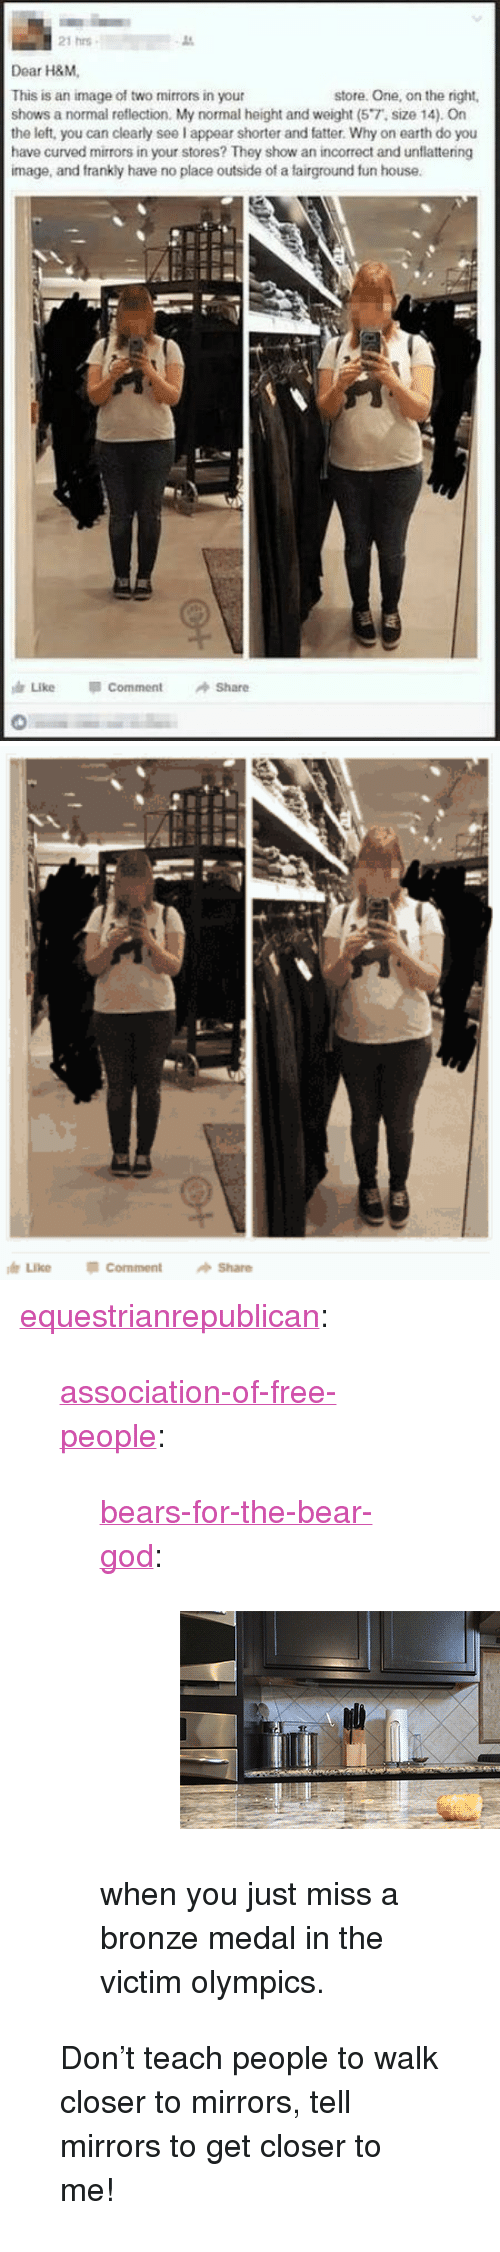 "Unflattering: 21 hrs  Dear HAM.  This is an image of two mirrors in your  shows a normal reflection. My normal height and weight (57, size 14).On  the left, you can clearly seel appear shorter and fatter. Why on earth do you  have curved mirrors in your stores? They show an incorrect and unflattering  image, and frankly have no place outside of a fairground fun house.  store. One, on the right,  Like  Comment  Share   霆  LikeCommentShare <p><a href=""http://equestrianrepublican.tumblr.com/post/155825333806/association-of-free-people"" class=""tumblr_blog"">equestrianrepublican</a>:</p>  <blockquote><p><a href=""http://association-of-free-people.tumblr.com/post/155810677809"" class=""tumblr_blog"">association-of-free-people</a>:</p> <blockquote> <p><a href=""http://bears-for-the-bear-god.tumblr.com/post/155810053946"" class=""tumblr_blog"">bears-for-the-bear-god</a>:</p> <blockquote><figure class=""tmblr-full"" data-orig-width=""440"" data-orig-height=""218"" data-tumblr-attribution=""hellozing:na5e0vBC3RloYqYbt12u9w:ZJPFux1Vb5r2L"" data-orig-src=""https://78.media.tumblr.com/f930347e23d0d1993294d06c00816341/tumblr_nf1nhwbDTt1qg9695o1_500.gif""><img src=""https://78.media.tumblr.com/f930347e23d0d1993294d06c00816341/tumblr_inline_ojq6cgcoaB1qmnzjw_500.gif"" data-orig-width=""440"" data-orig-height=""218"" data-orig-src=""https://78.media.tumblr.com/f930347e23d0d1993294d06c00816341/tumblr_nf1nhwbDTt1qg9695o1_500.gif""/></figure></blockquote> <p>when you just miss a bronze medal in the victim olympics. </p> </blockquote> <p>Don't teach people to walk closer to mirrors, tell mirrors to get closer to me!</p></blockquote>"